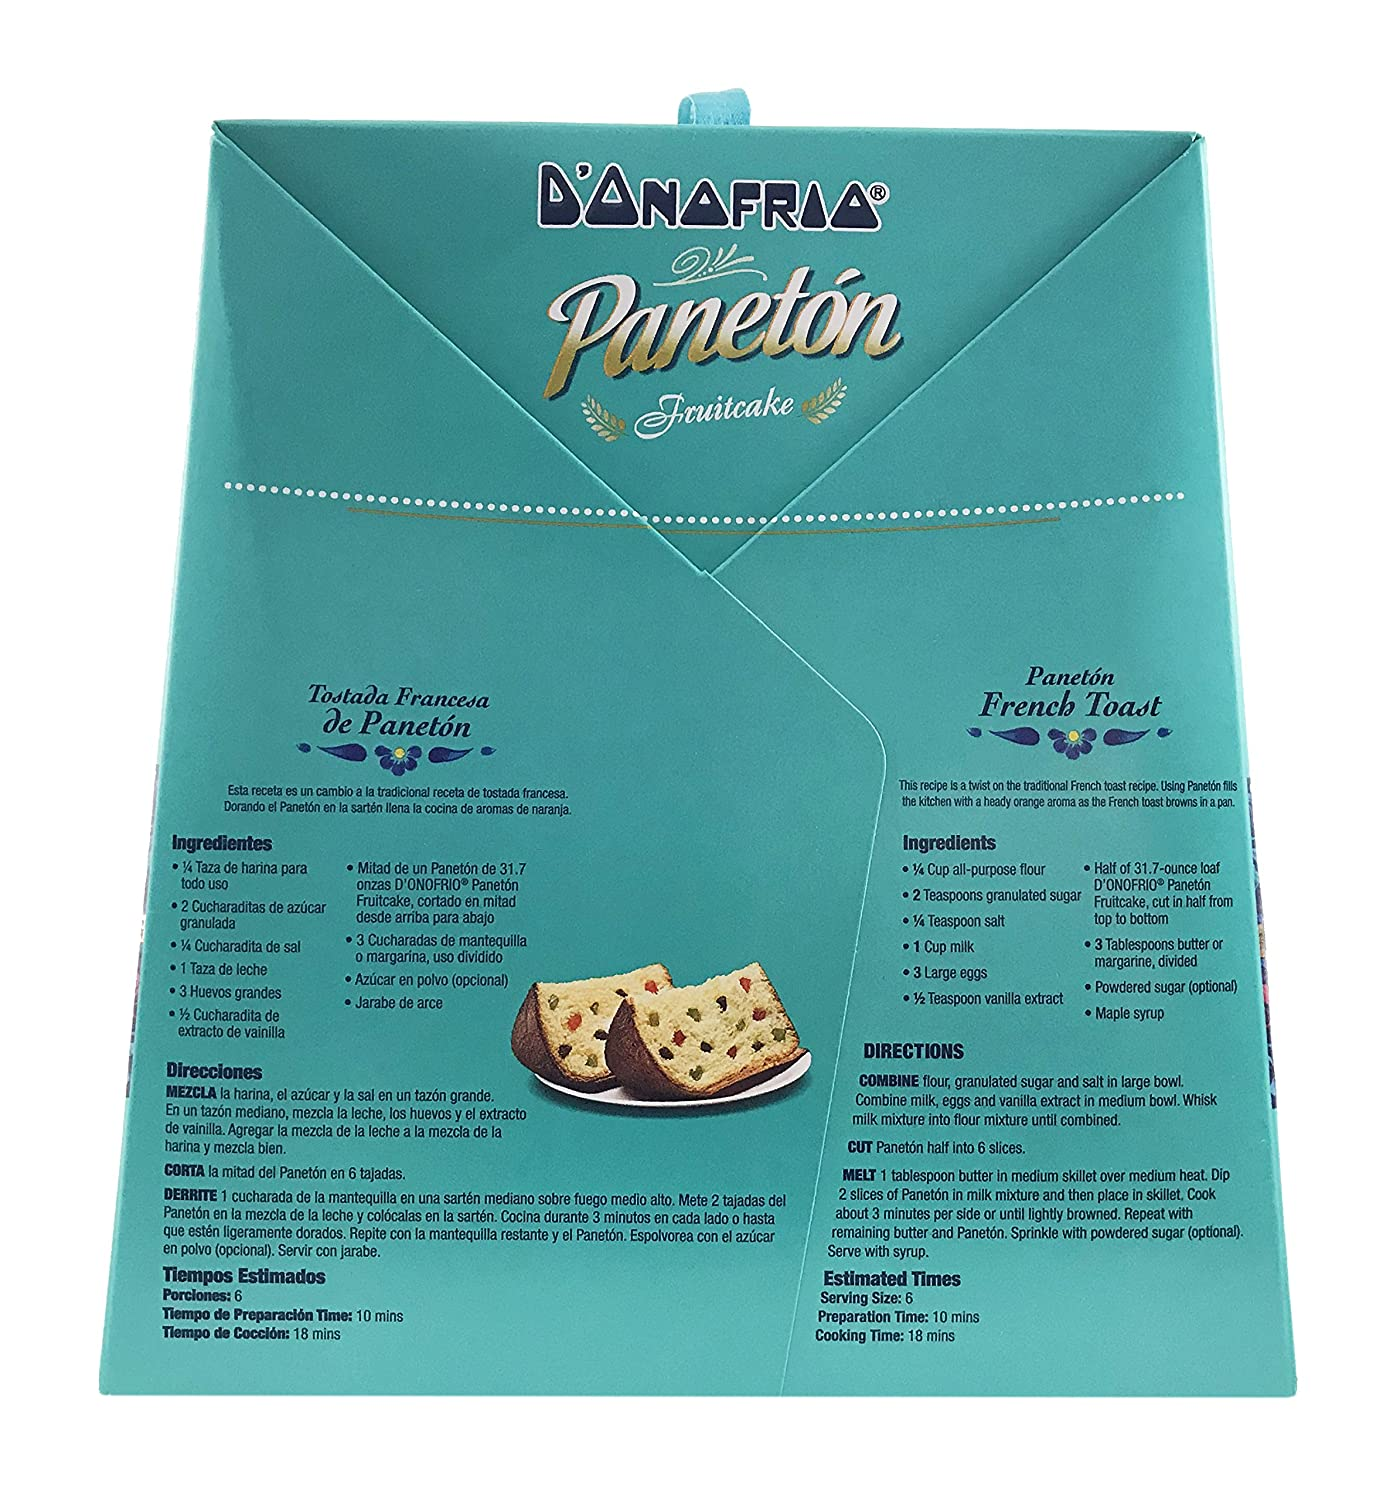 Paneton Donofrio Fruit Cake - Gourmet Traditional Panettone Dessert Bread - Imported from Peru - 31.7 oz./1.98 Lb.: Amazon.com: Grocery & Gourmet Food